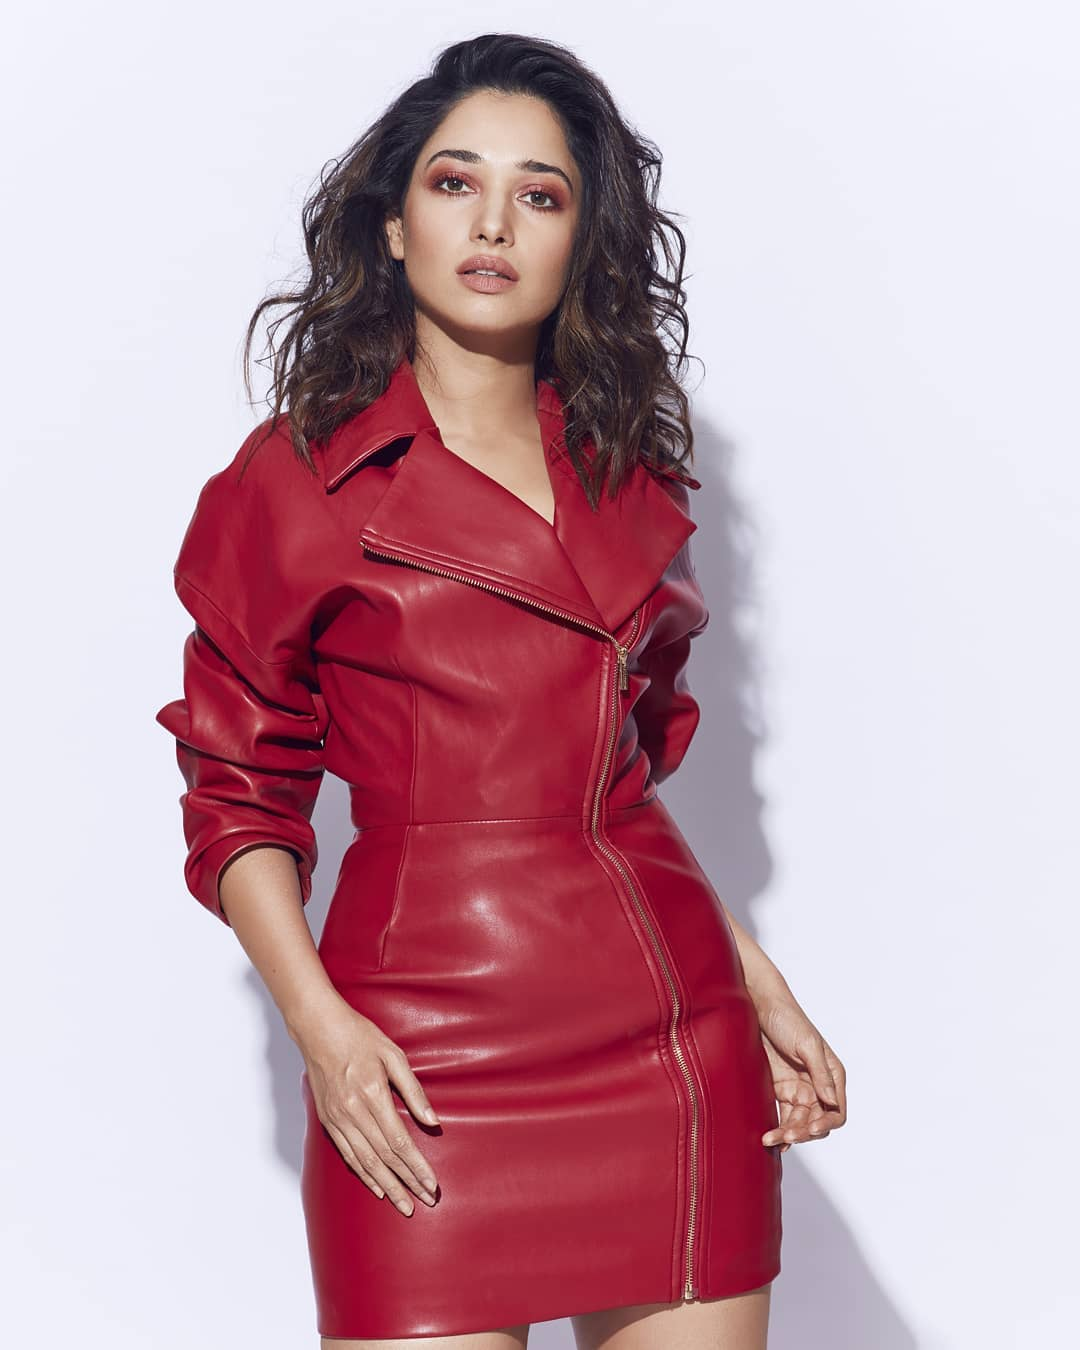 Tamanna Hot In Red Leather Dress